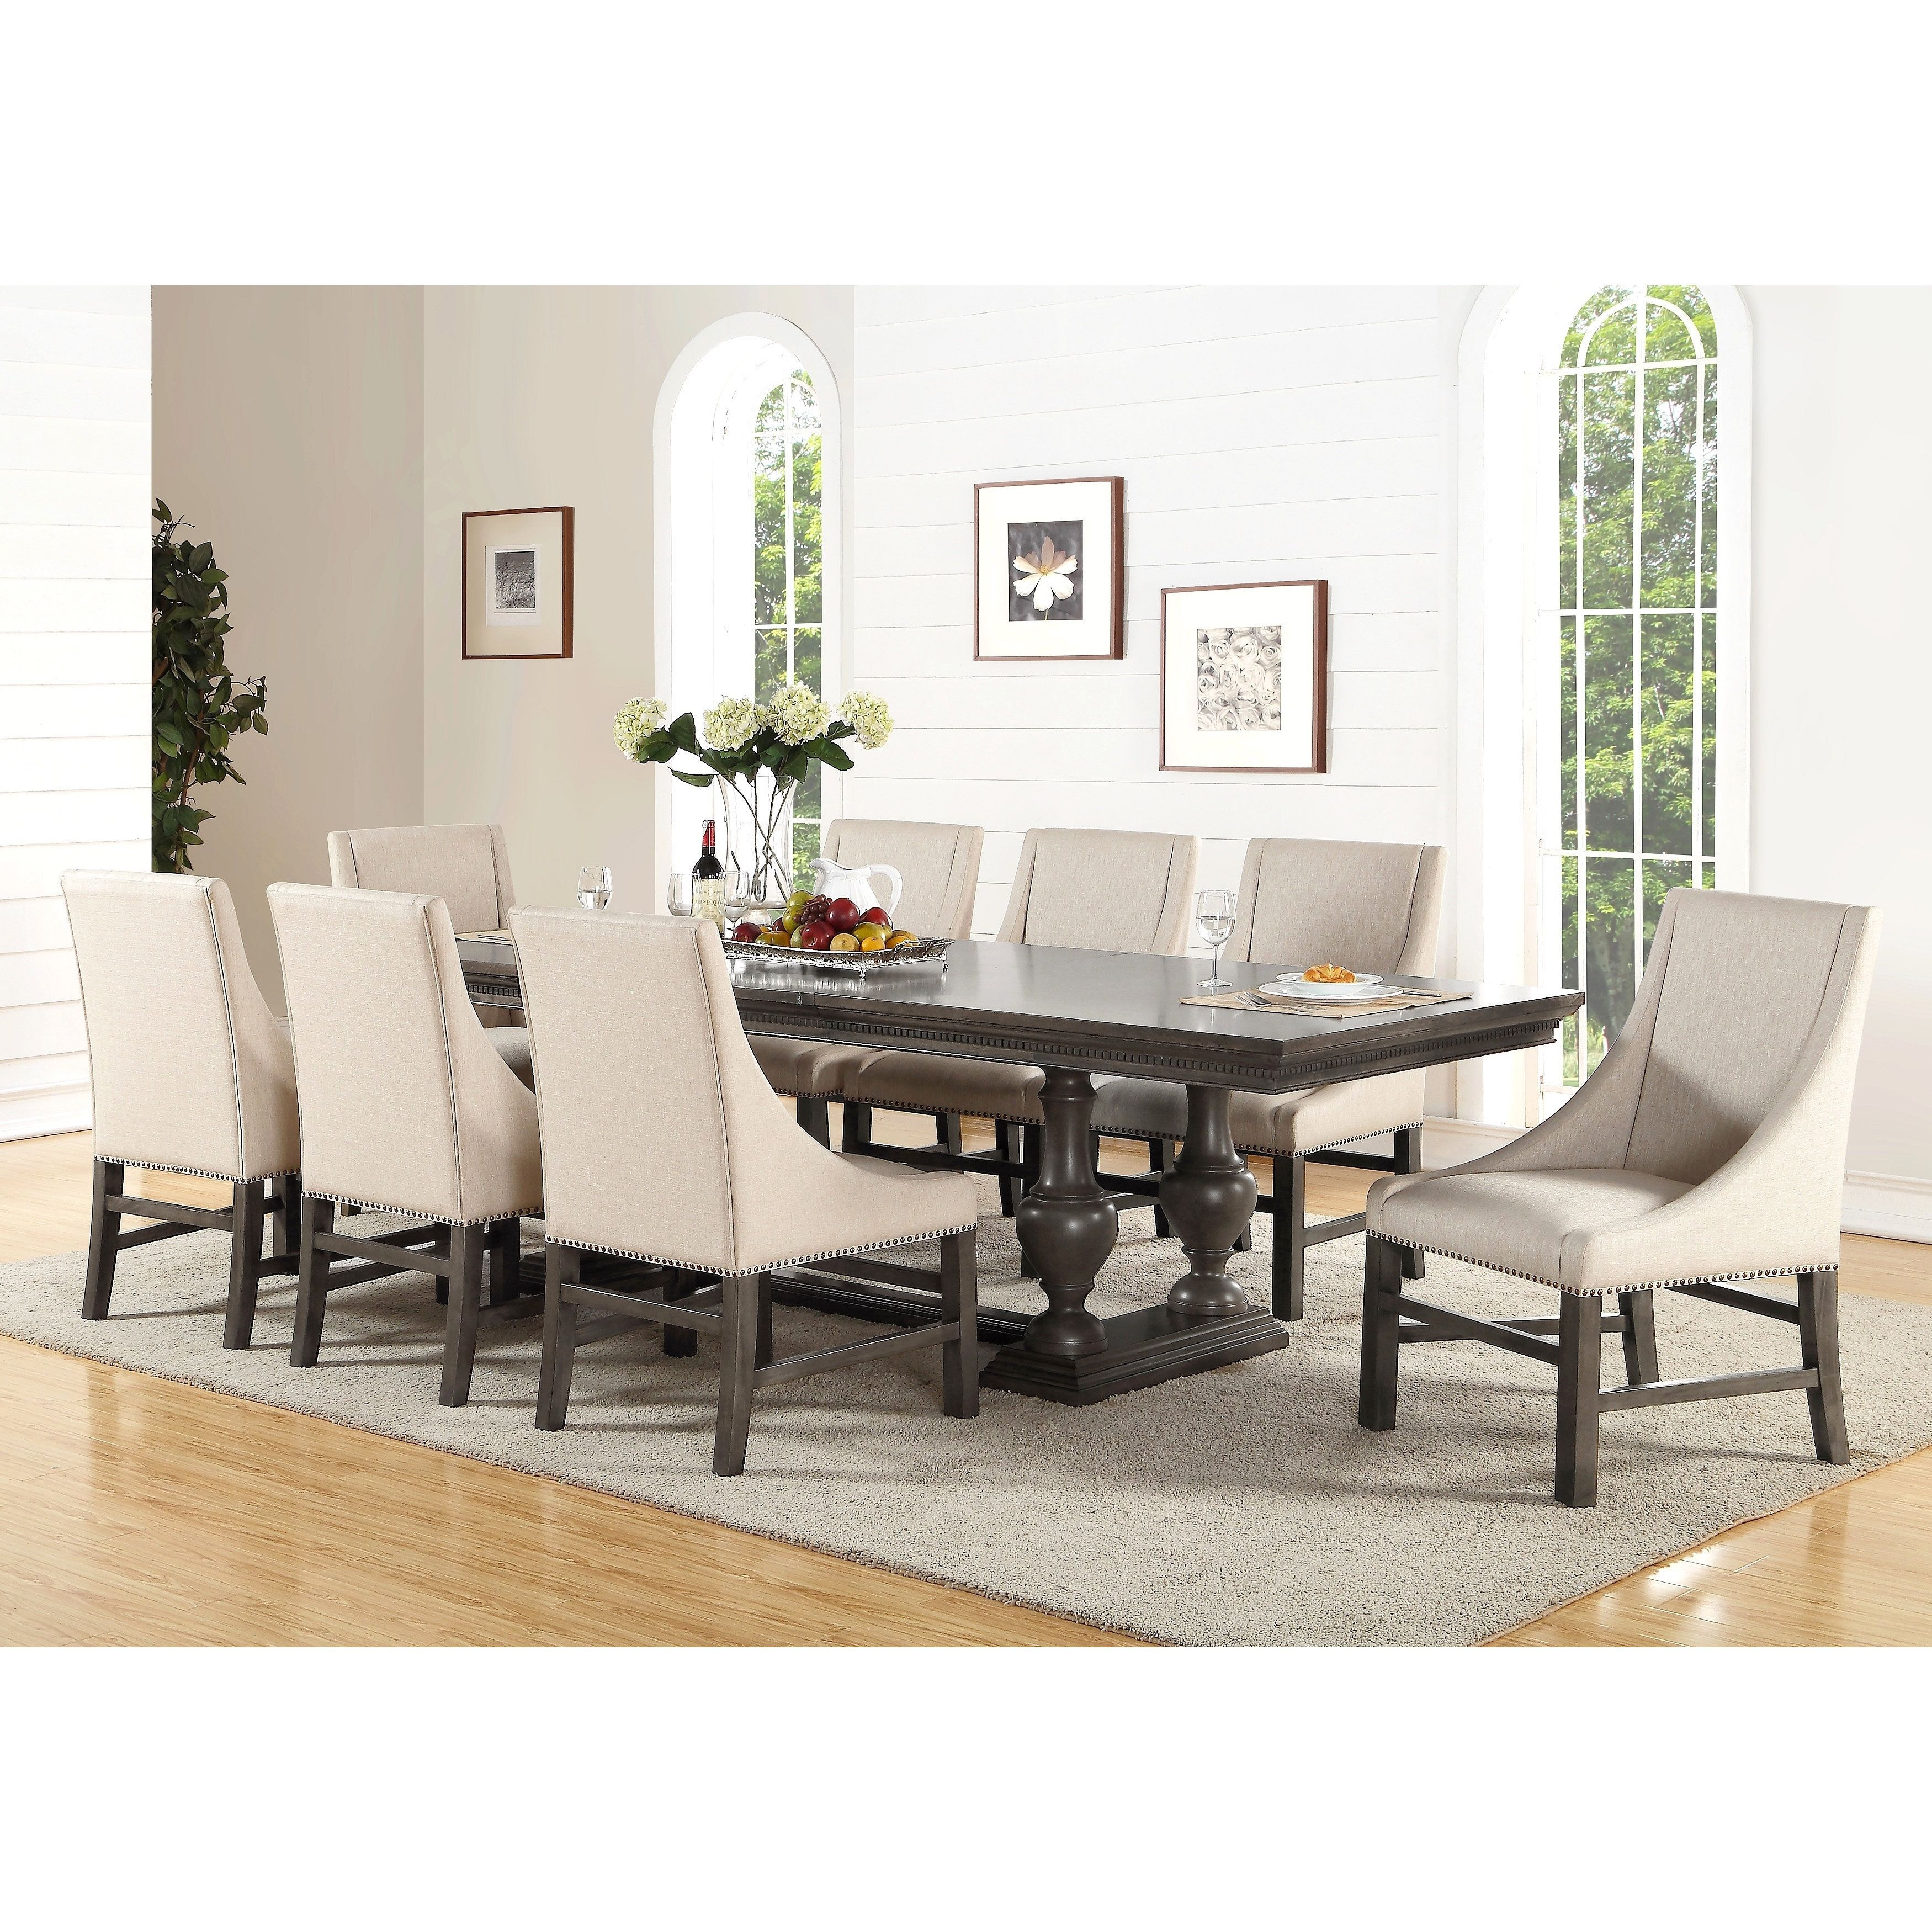 Abbyson Living Marseilles City Grey 9 Piece Dining Set (Marseilles), Size 9 Piece  Sets